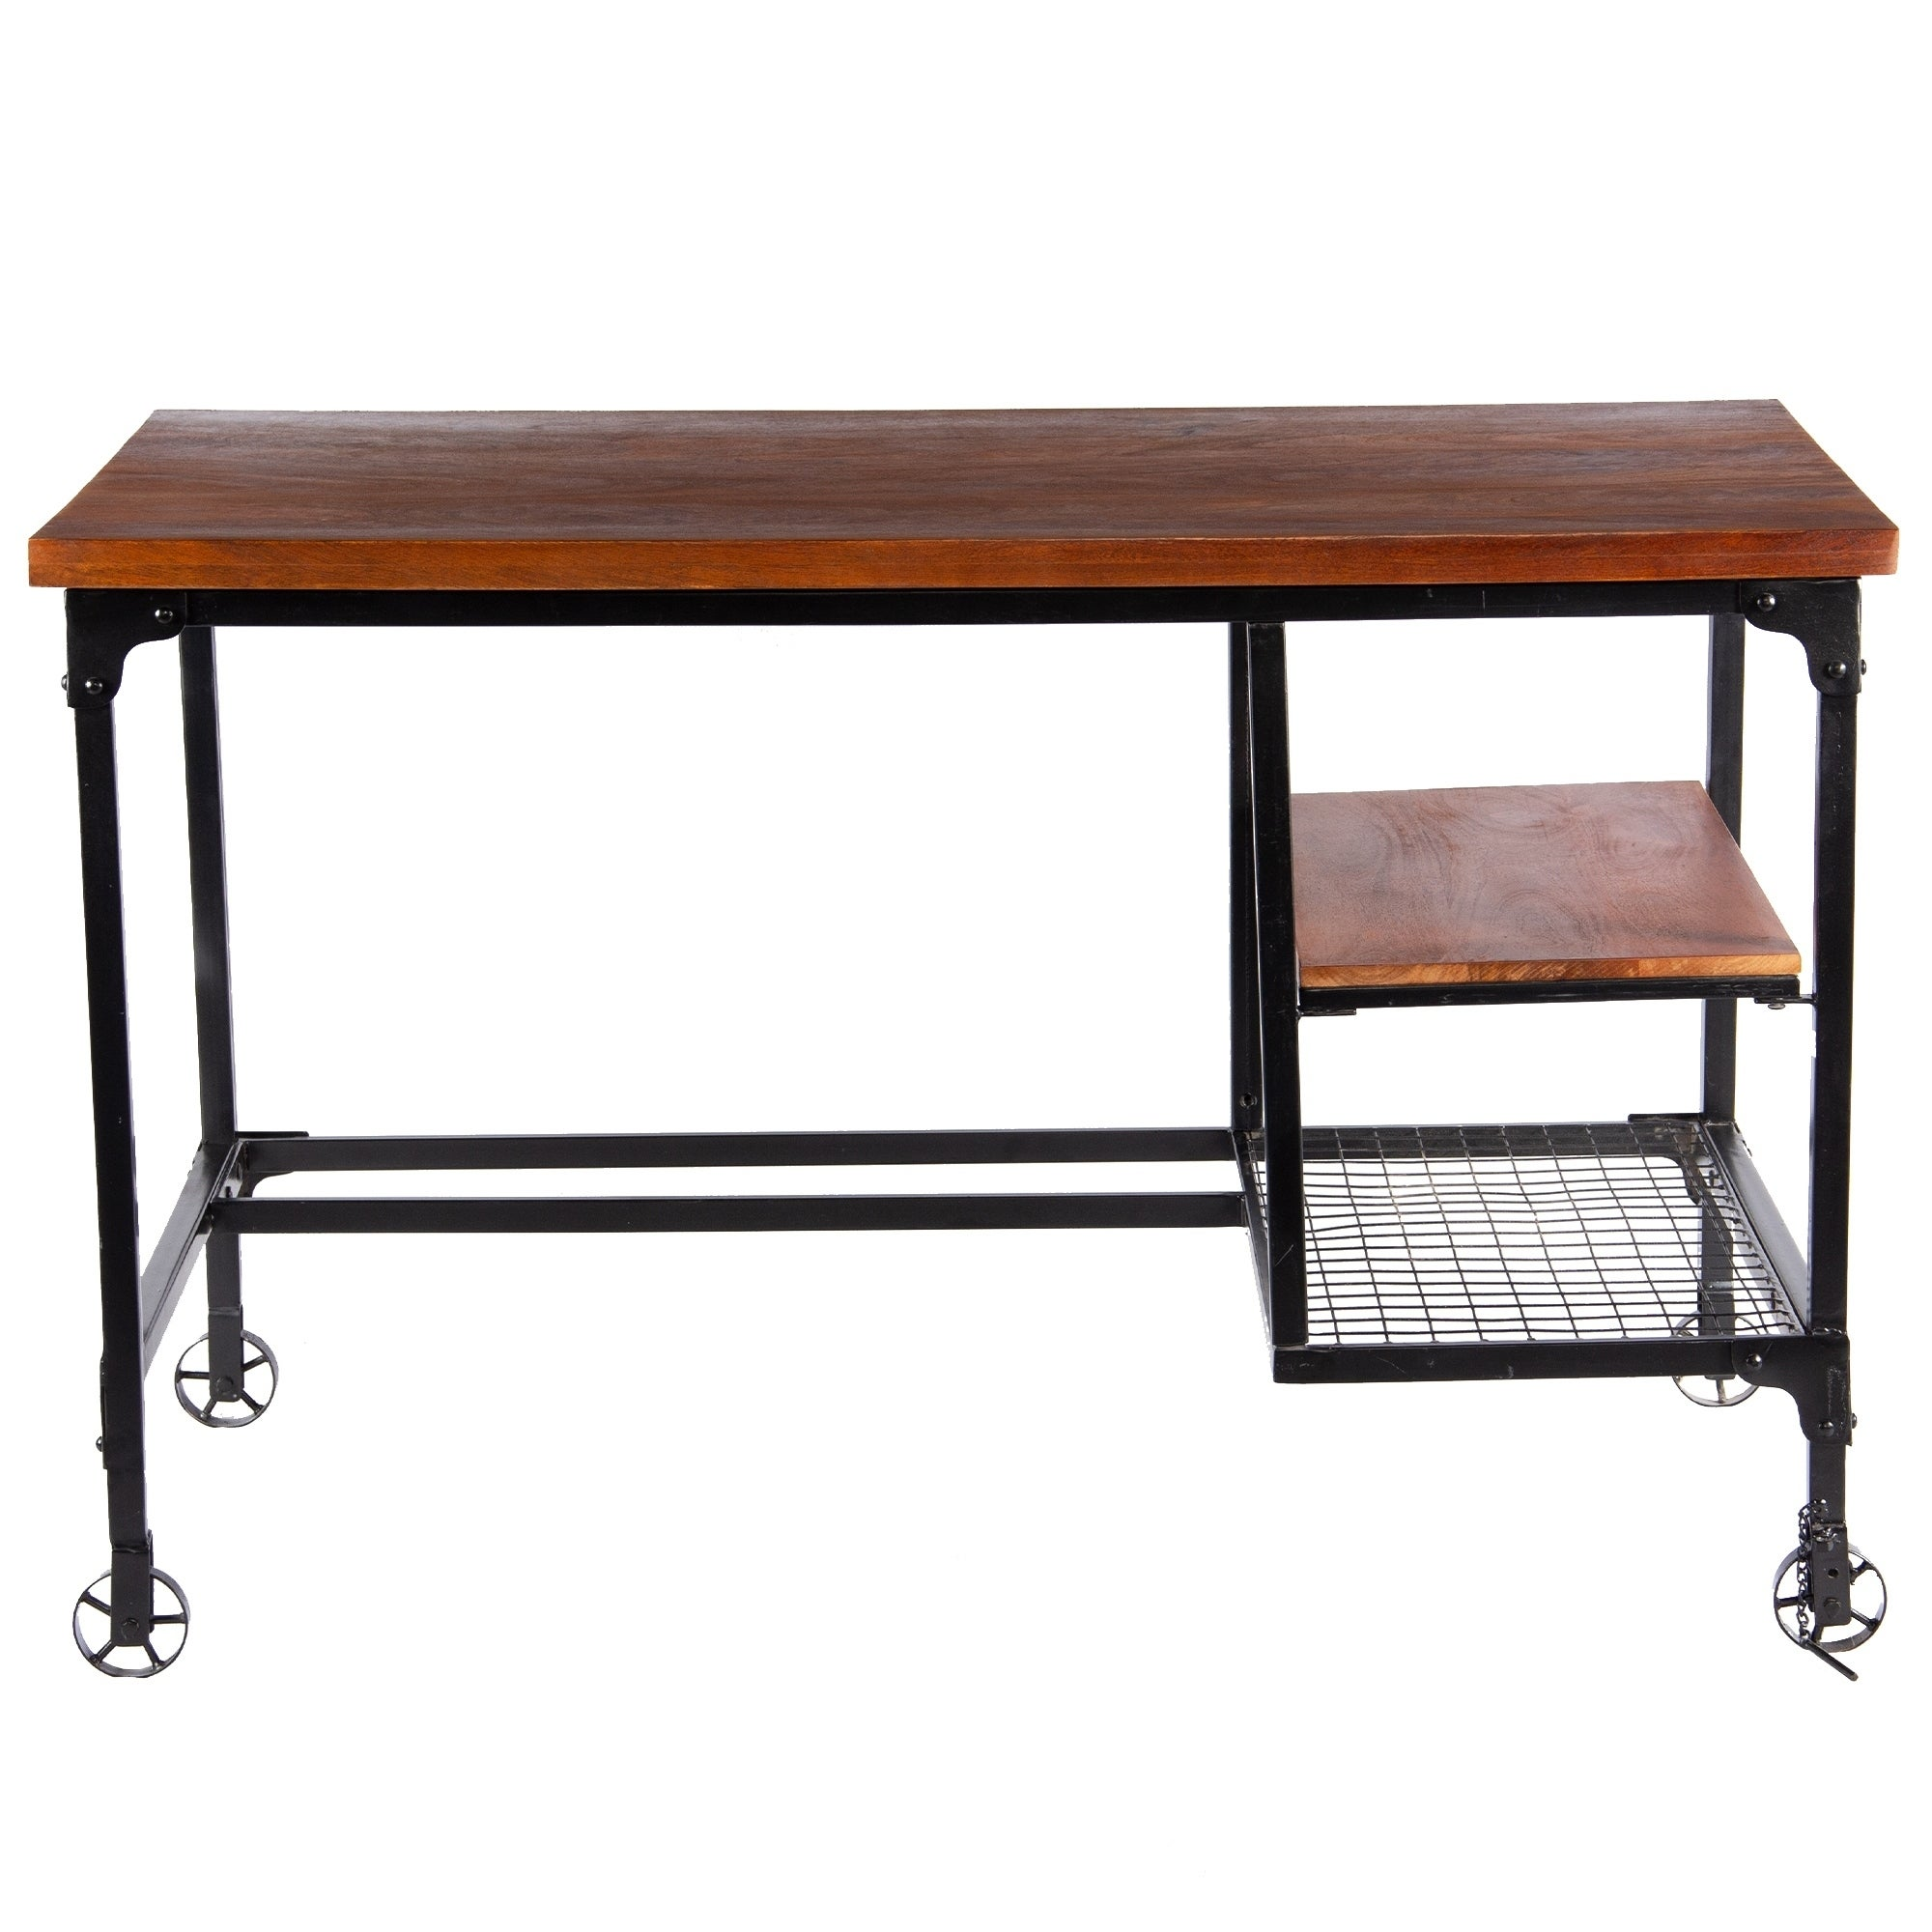 Industrial Style Wooden Desk With Two Bottom Shelves Brown And Black On Sale Overstock 20445931